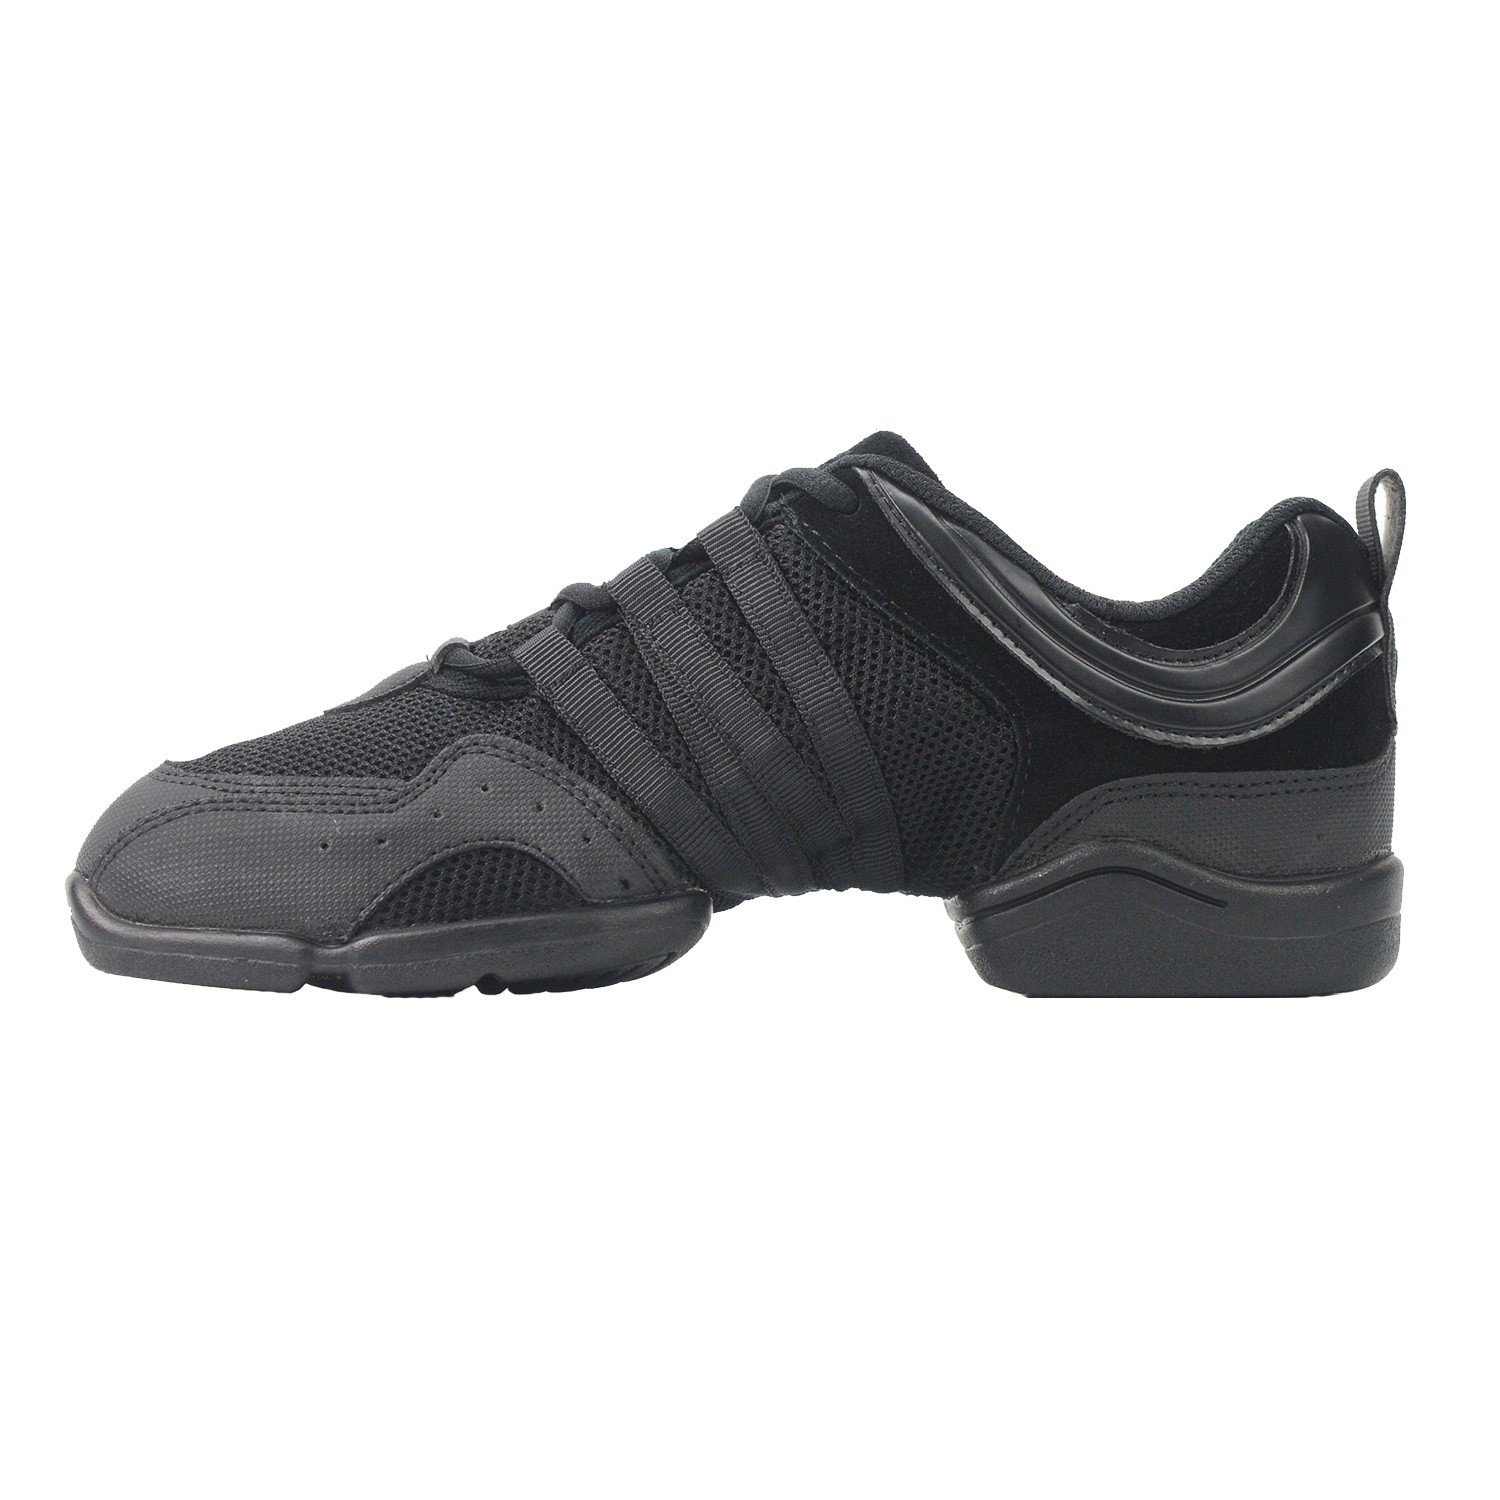 Sansha M22M Magnet Low Top Sneaker